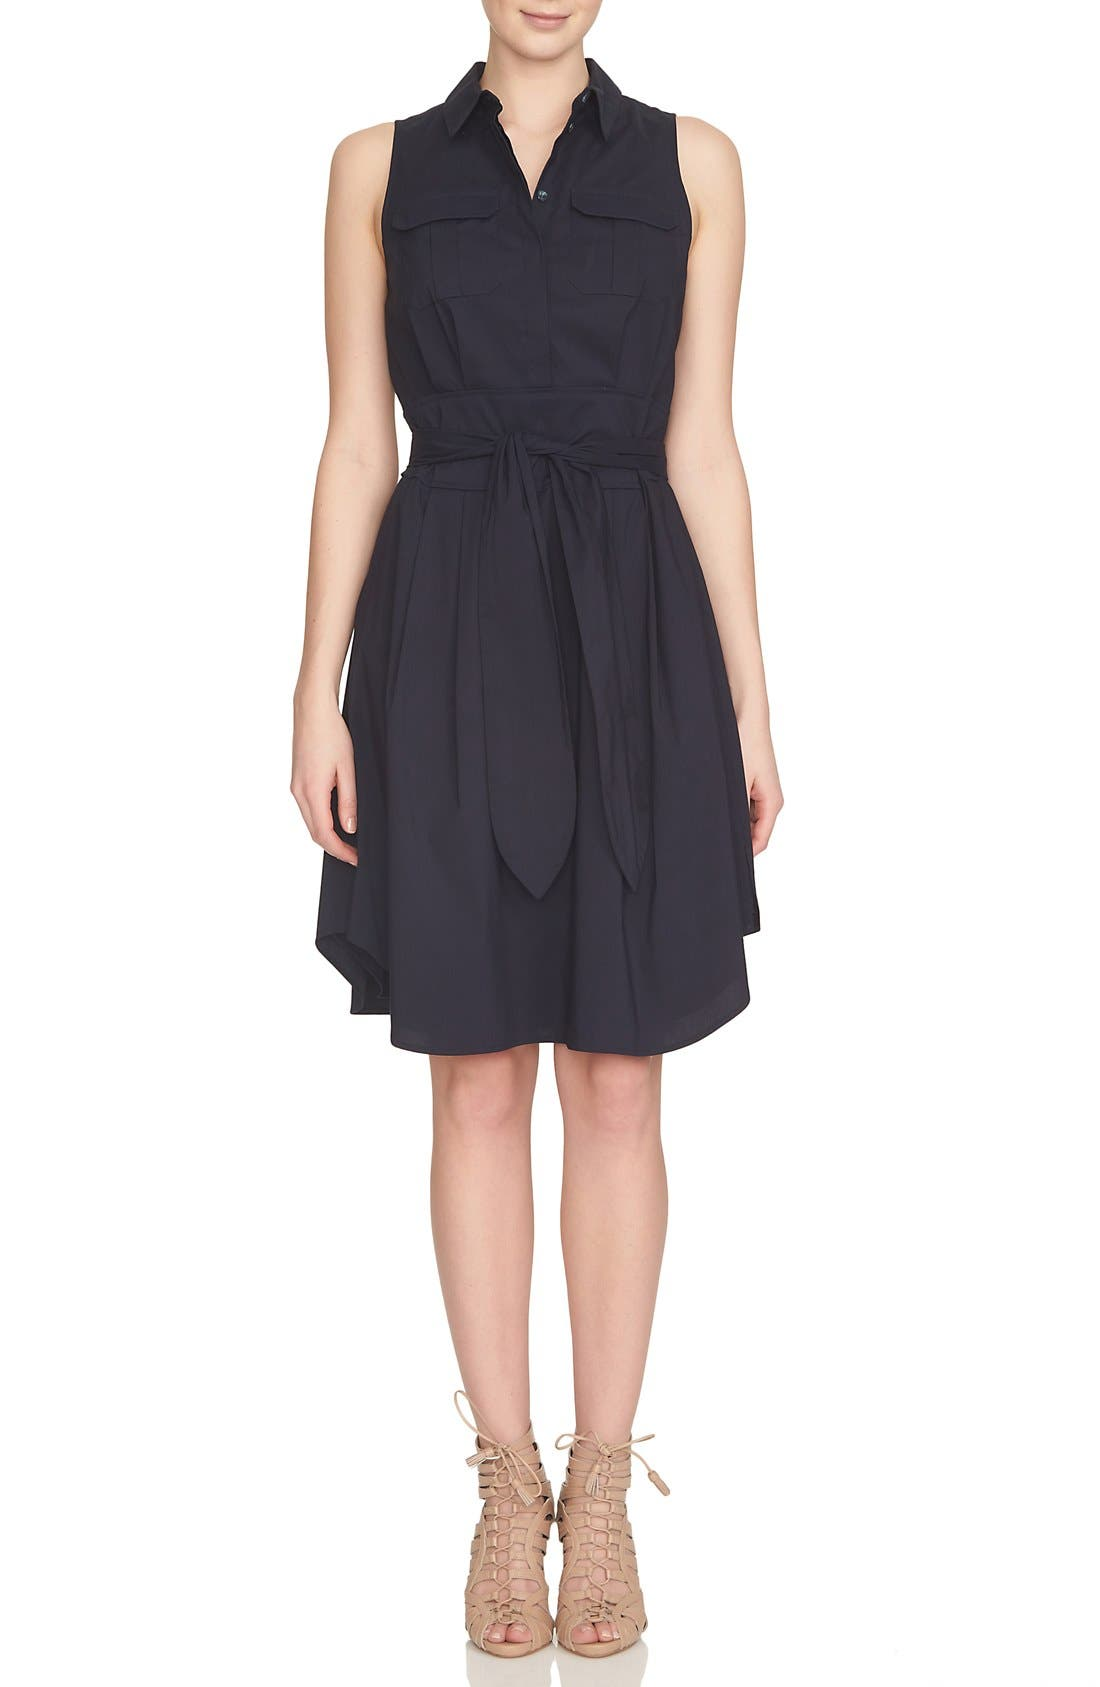 CYNTHIA STEFFE Collared Cotton Blend Fit & Flare